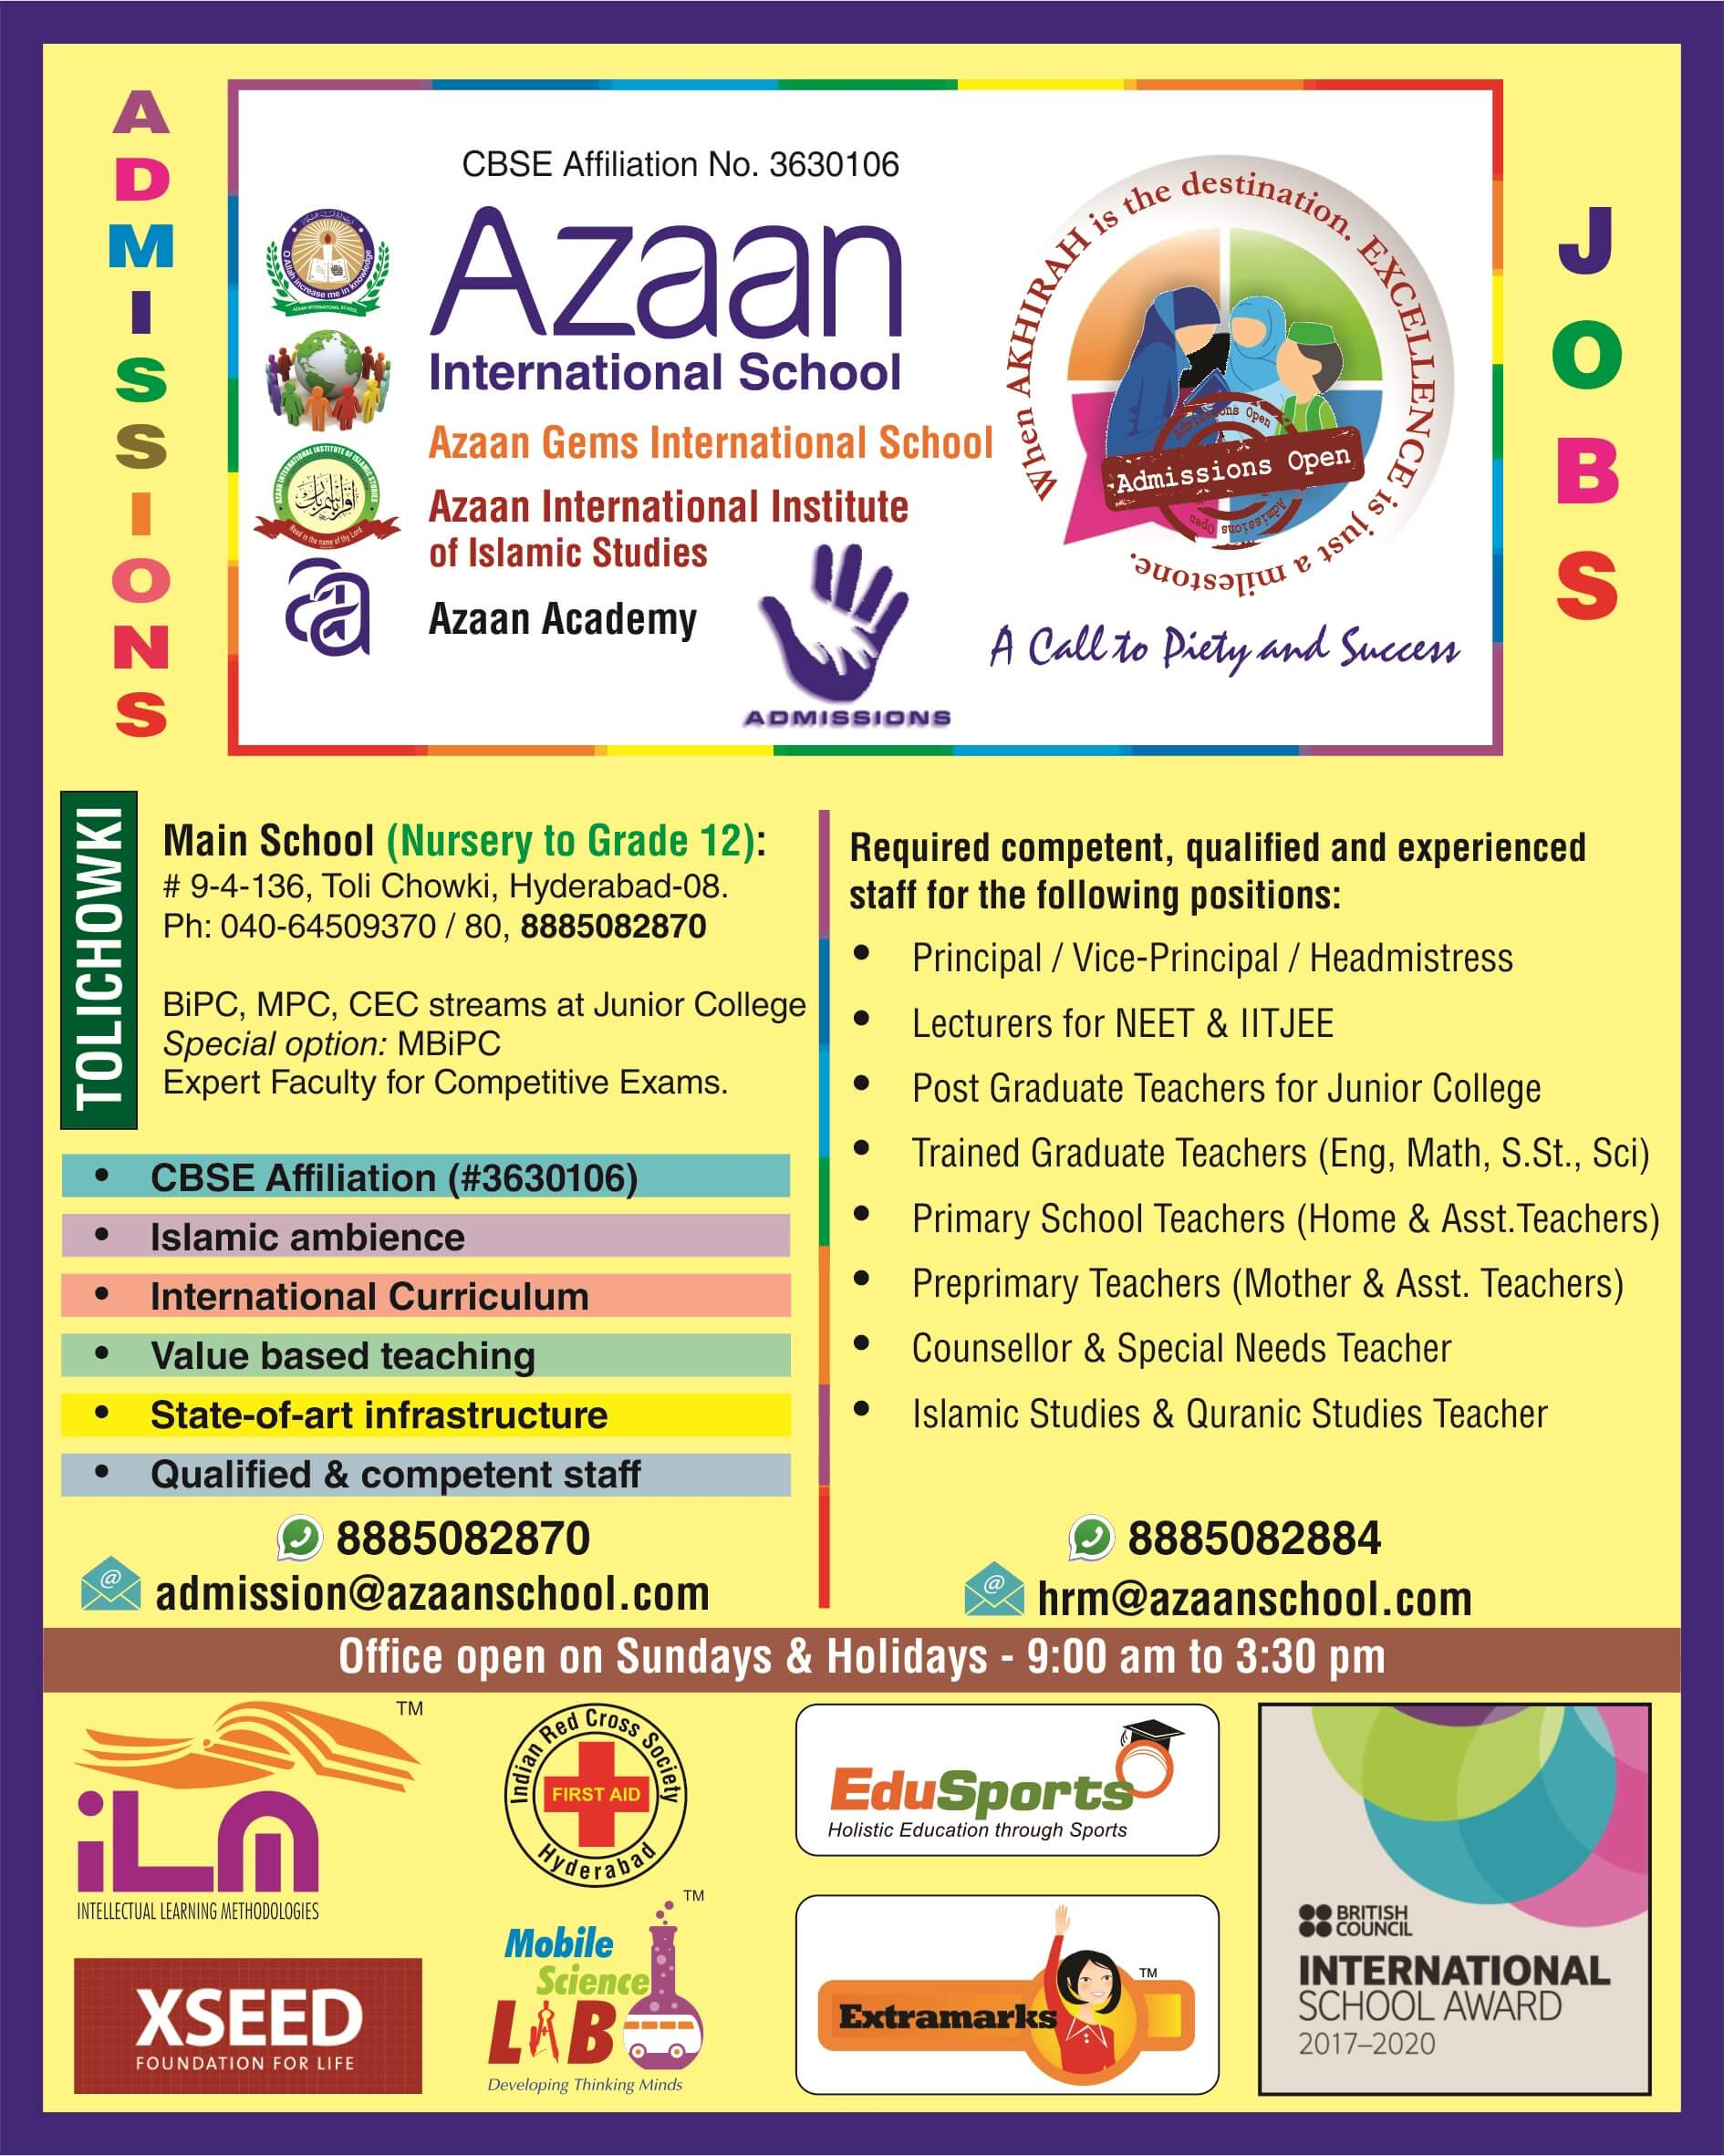 Azaan International School